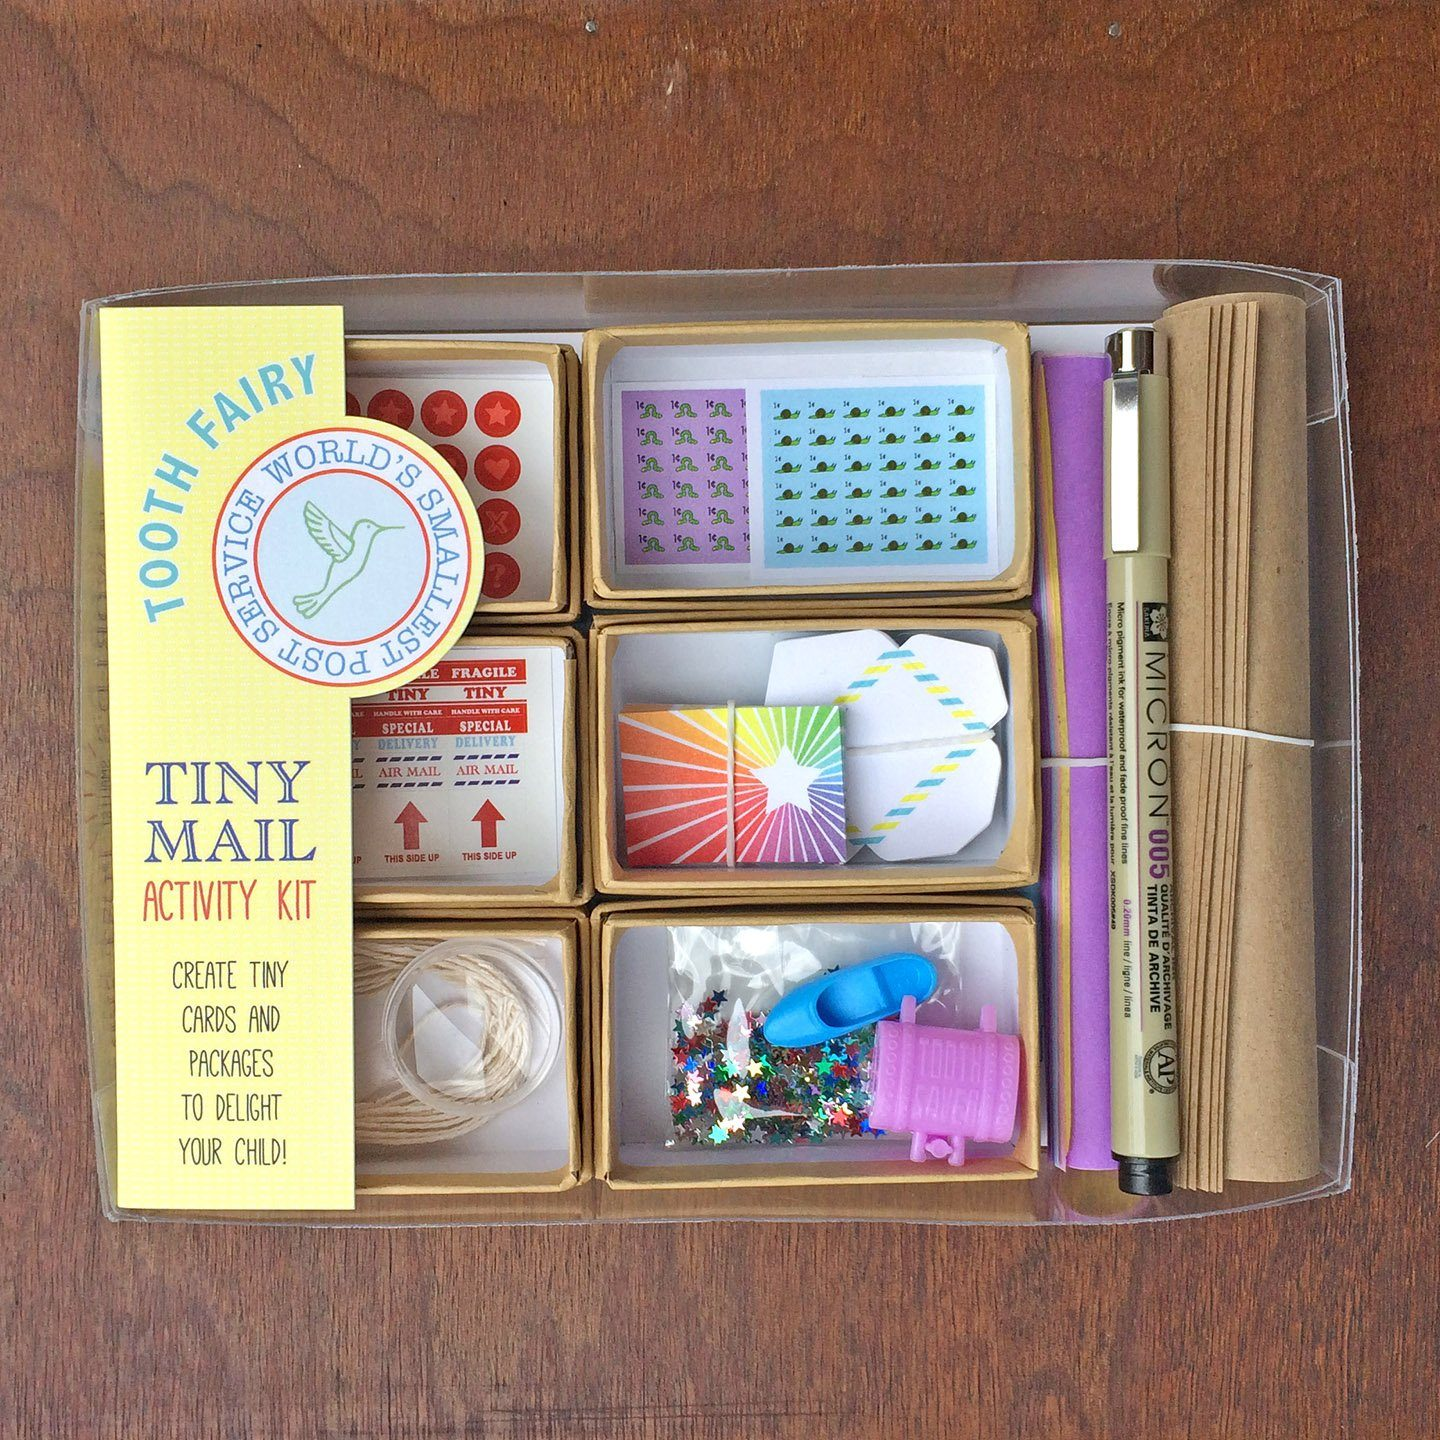 Tooth Fairy - Tiny Mail Kit | Fairy Books & Stationery | Earth Fairy